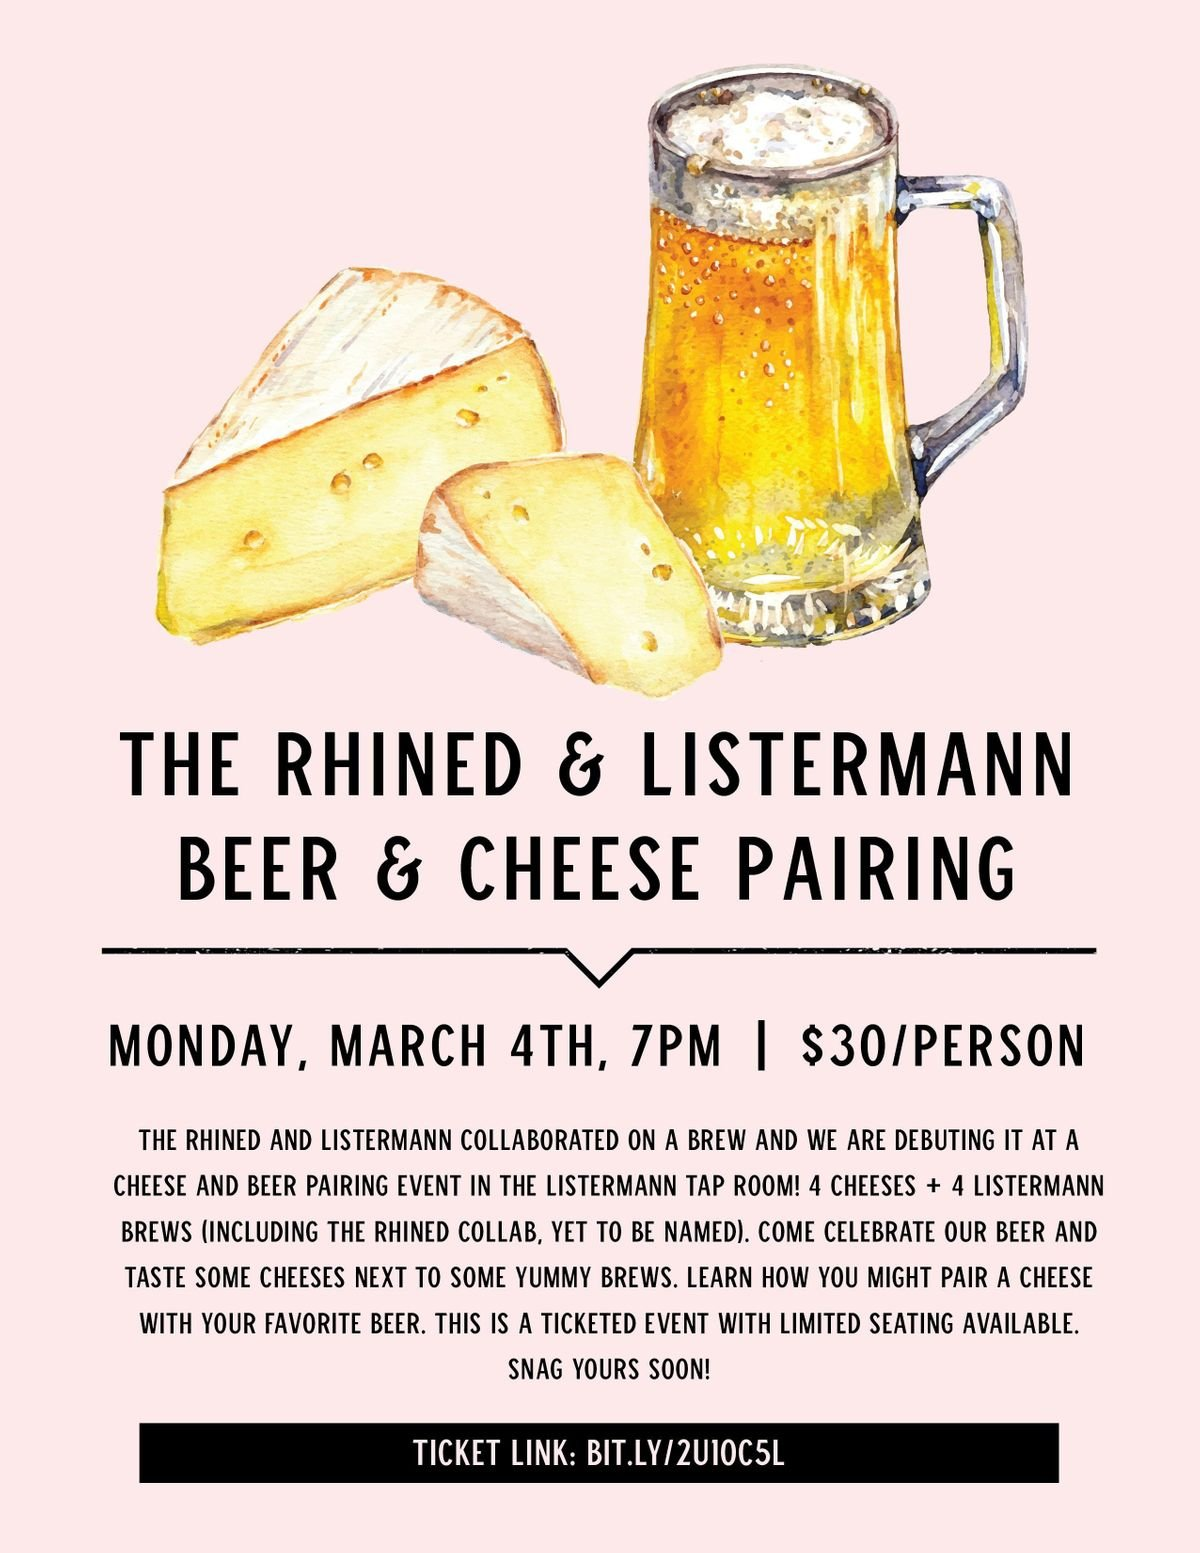 Beer and Cheese Pairing with The Rhined